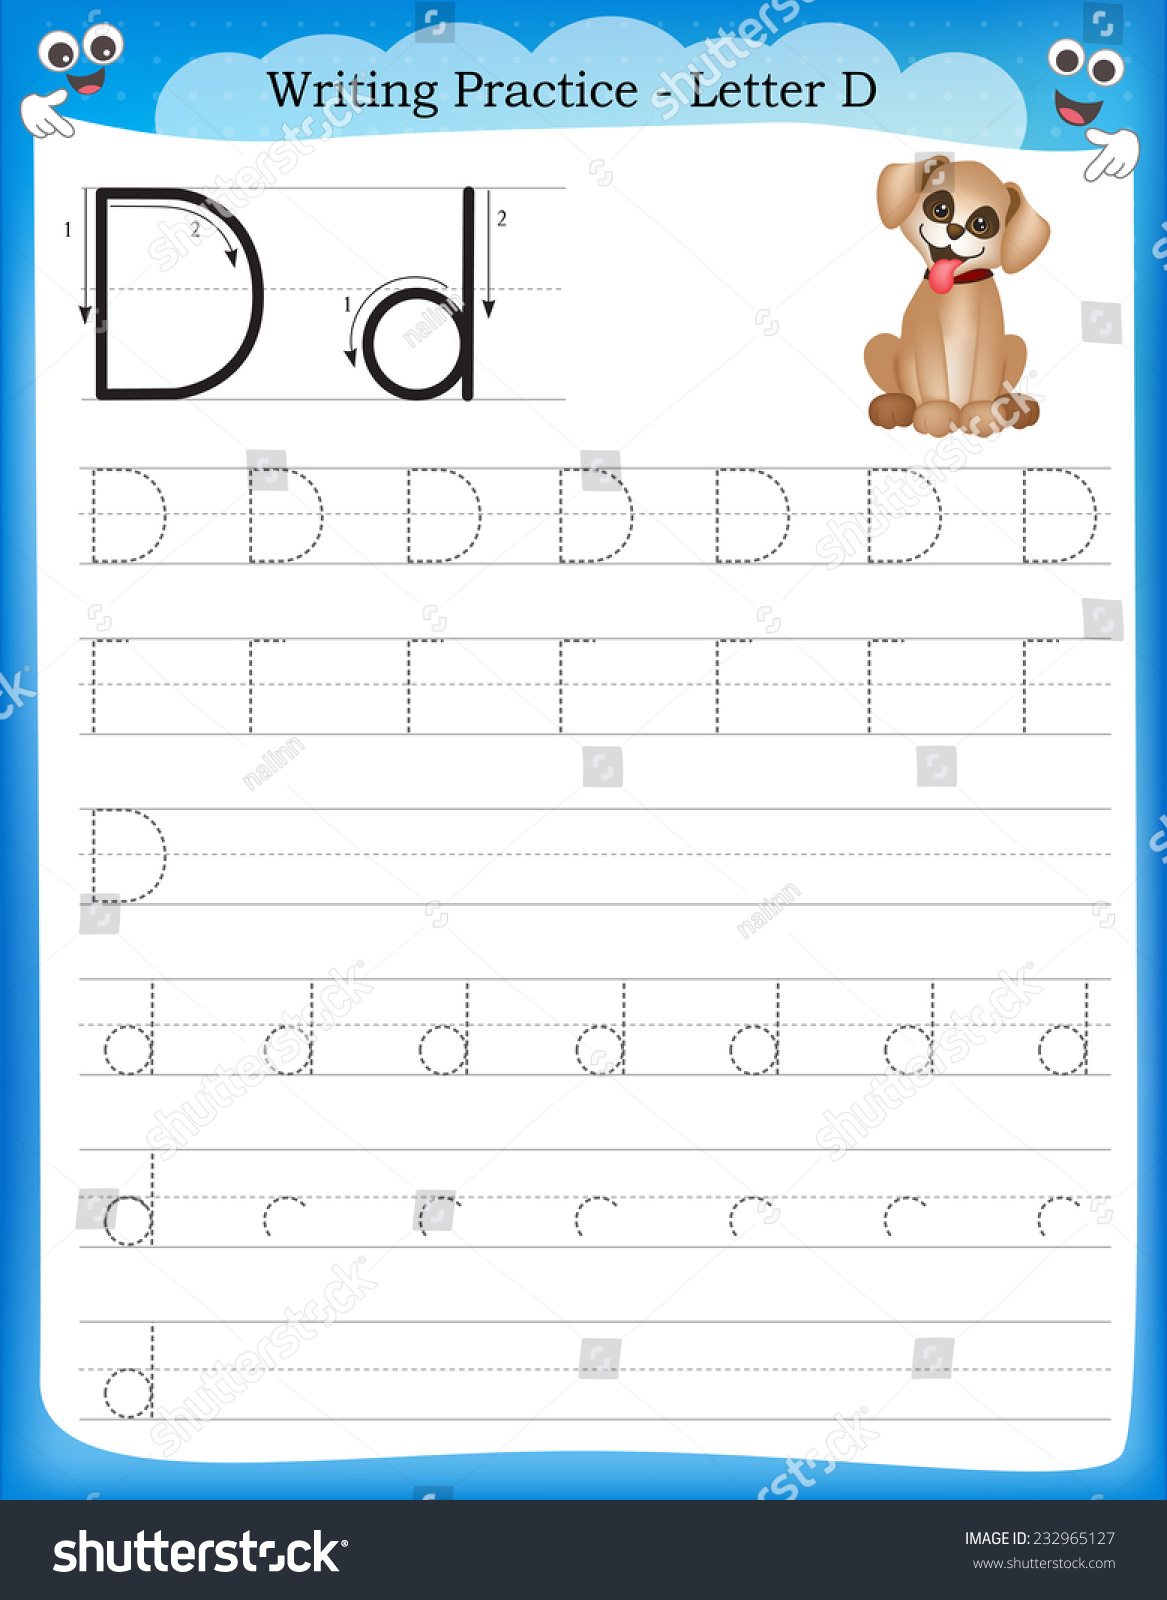 Writing Practice Letter D Printable Worksheet For